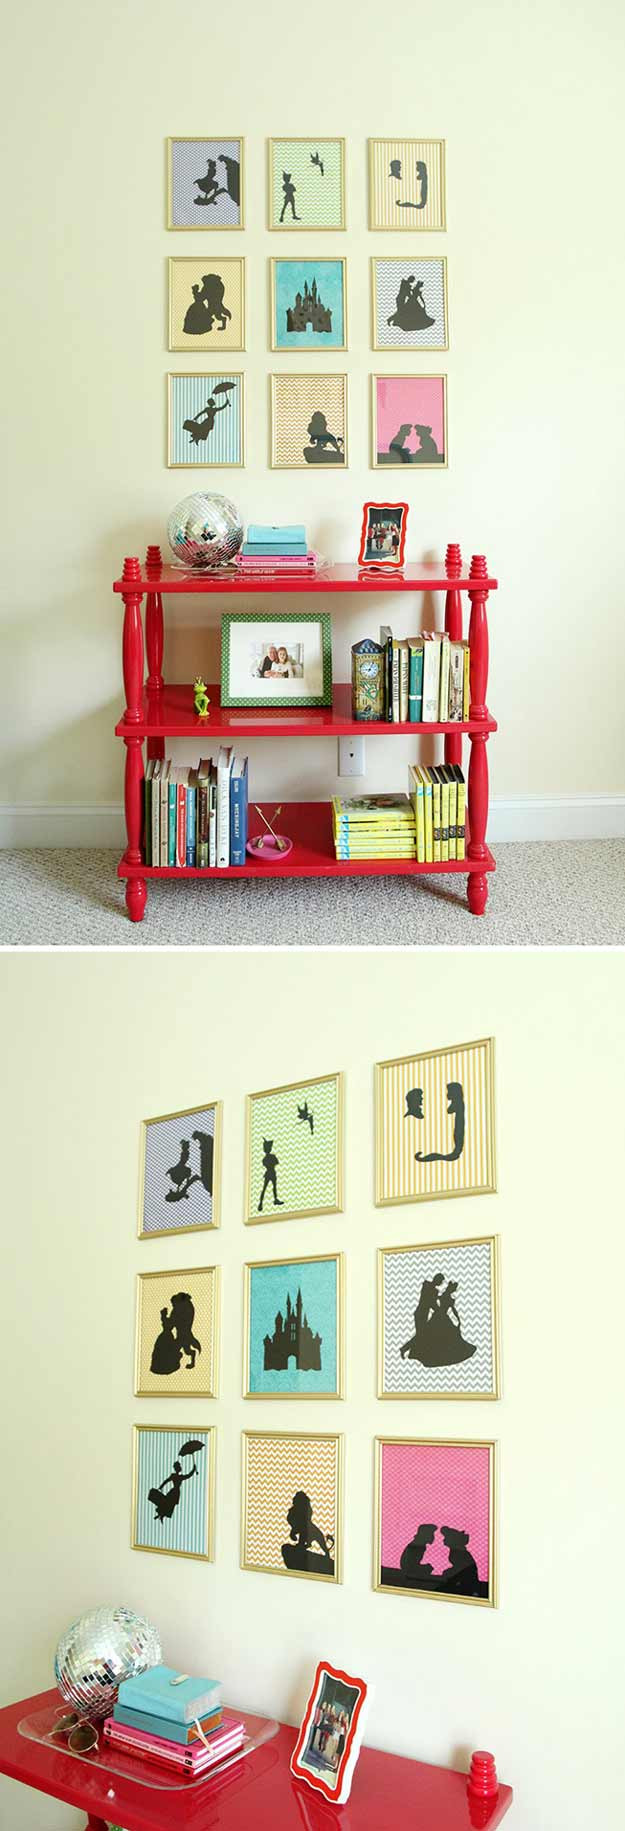 Best ideas about DIY Room Decoration For Girls . Save or Pin 15 DIY Teen Girl Room Ideas Now.